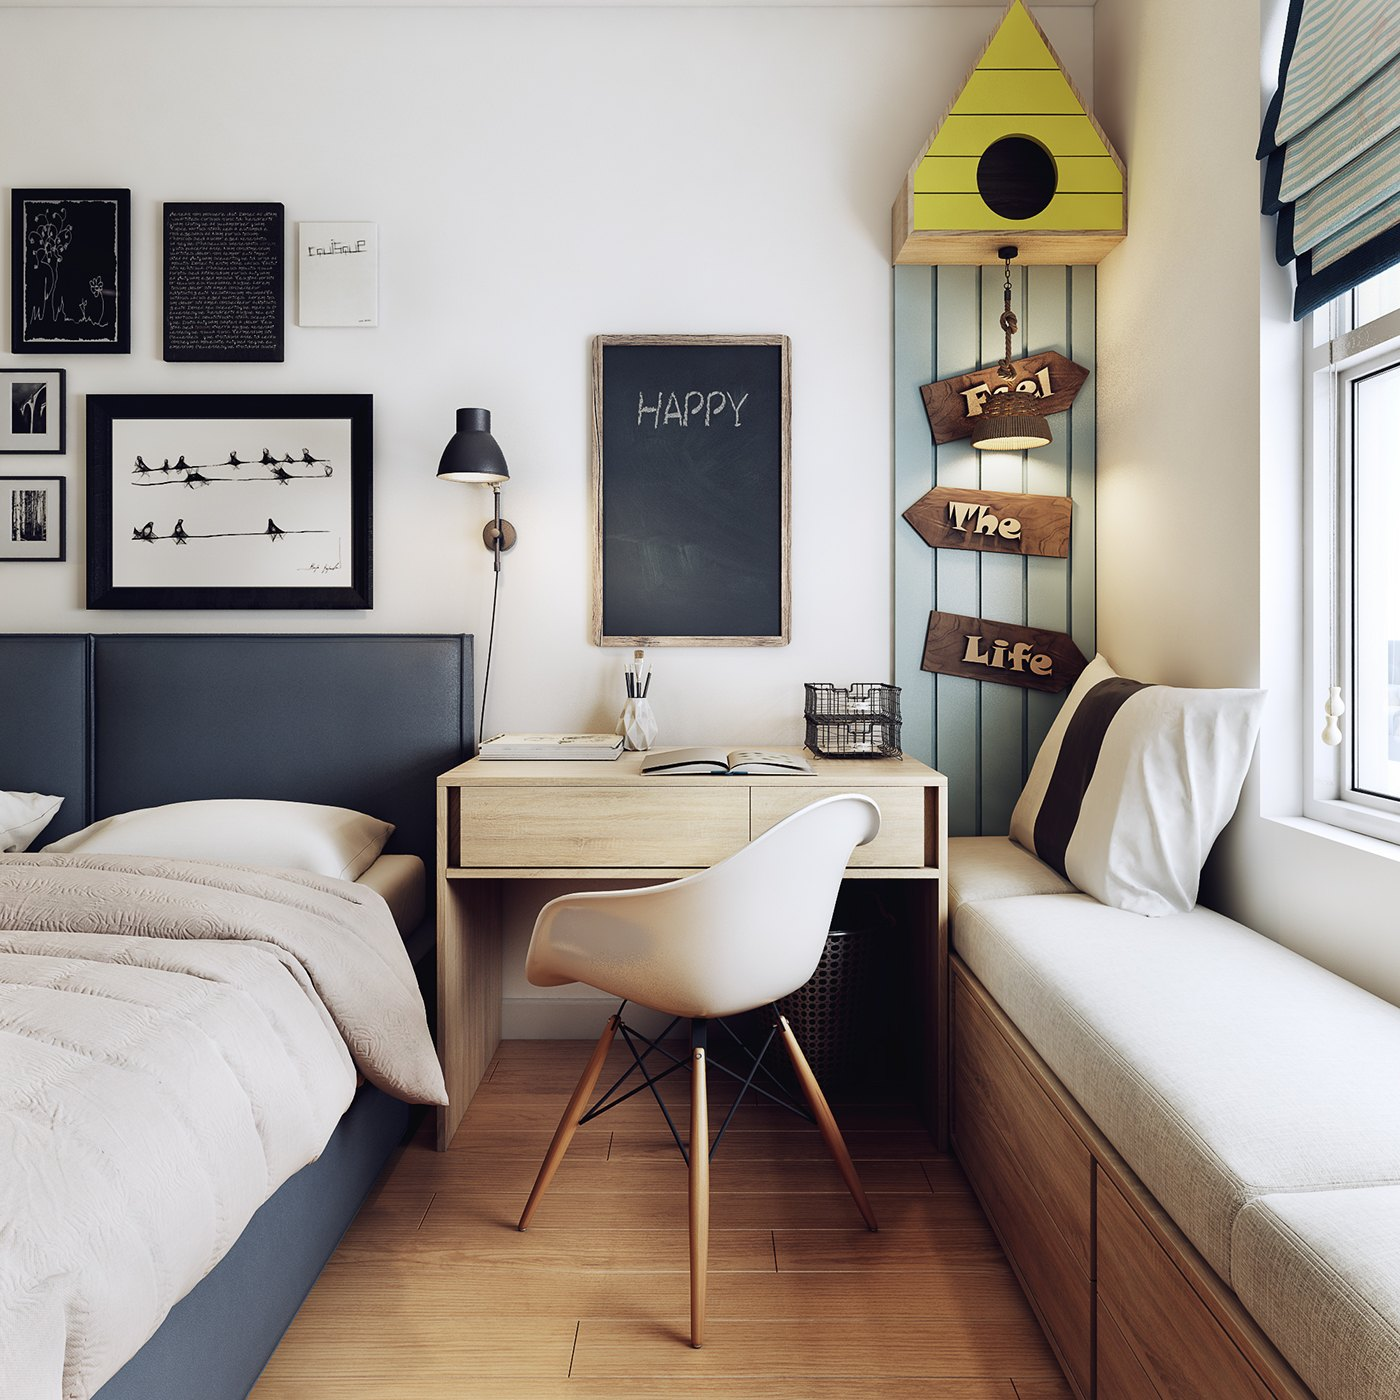 Cute Birdhouse Bedroom Theme - 10 stunning apartments that show off the beauty of nordic interior design